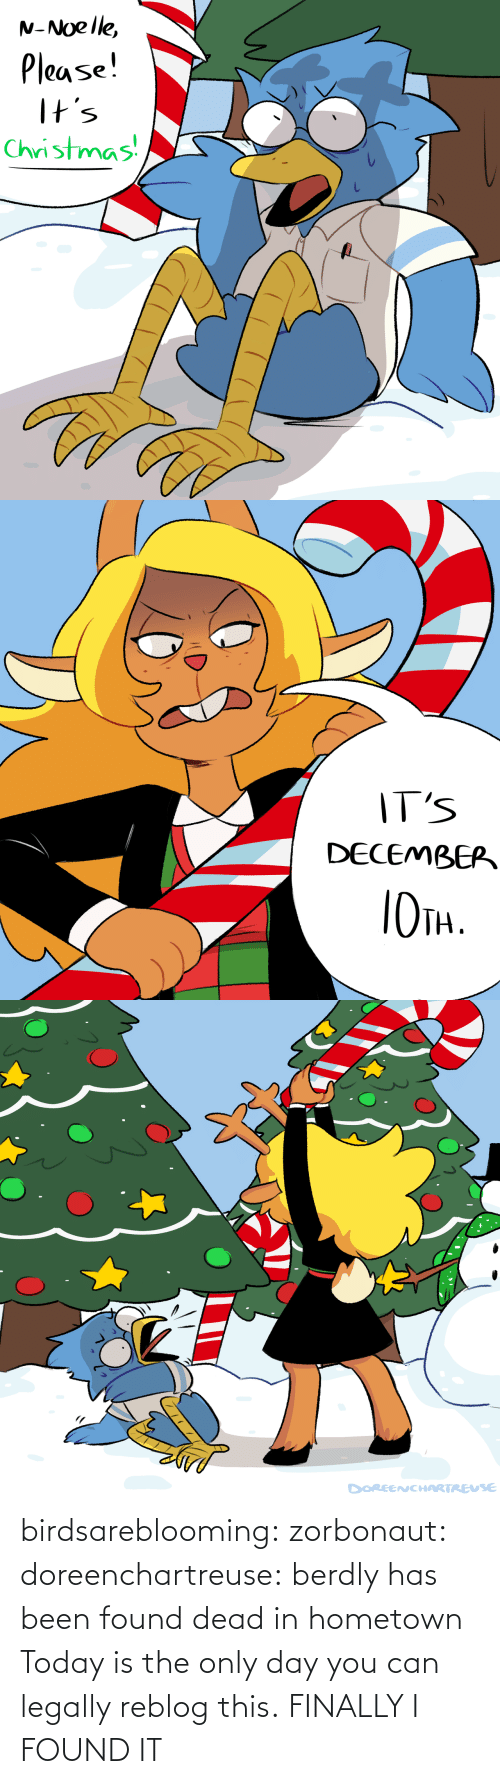 Reblog: N-Noelle,  Please!  I+s  Christmas   IT'S  DECEMBEP  TH.   DOREENCHARTREUSE birdsareblooming:  zorbonaut:  doreenchartreuse: berdly has been found dead in hometown Today is the only day you can legally reblog this.  FINALLY I FOUND IT